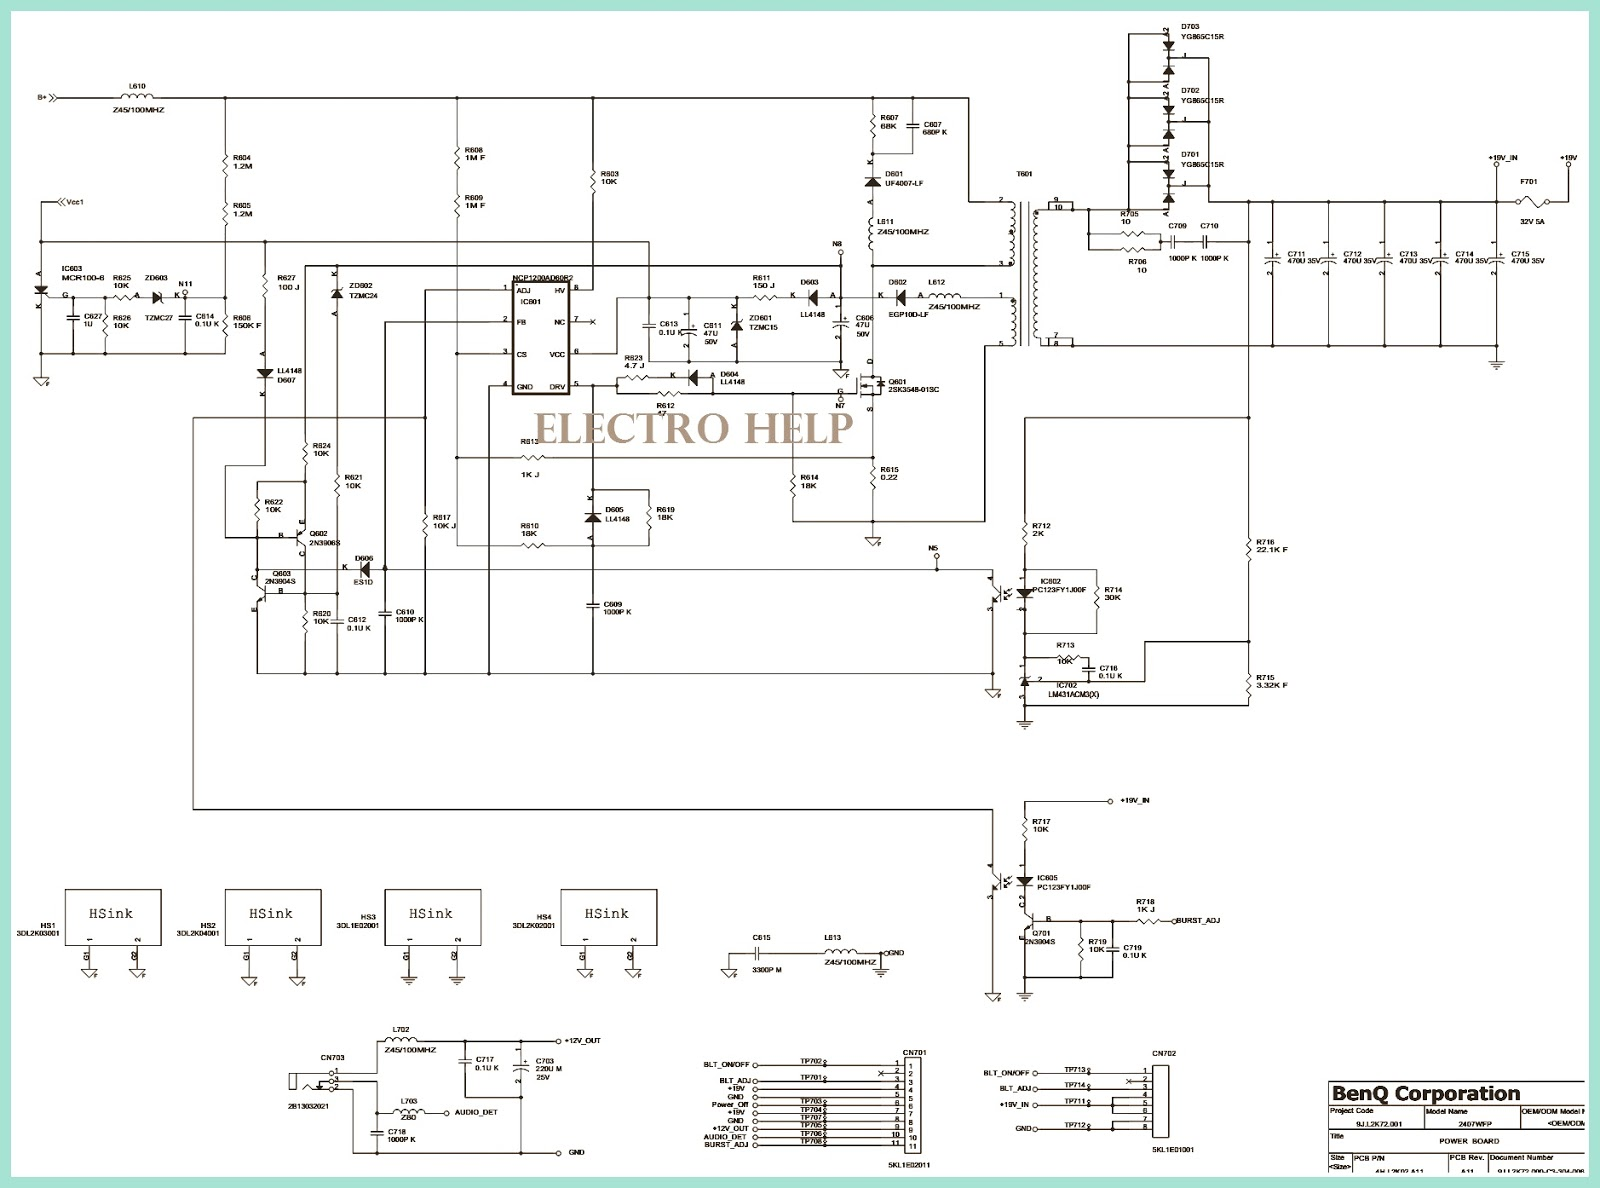 FIG 2 benq wiring diagram wiring harness wiring diagram \u2022 wiring  at bayanpartner.co